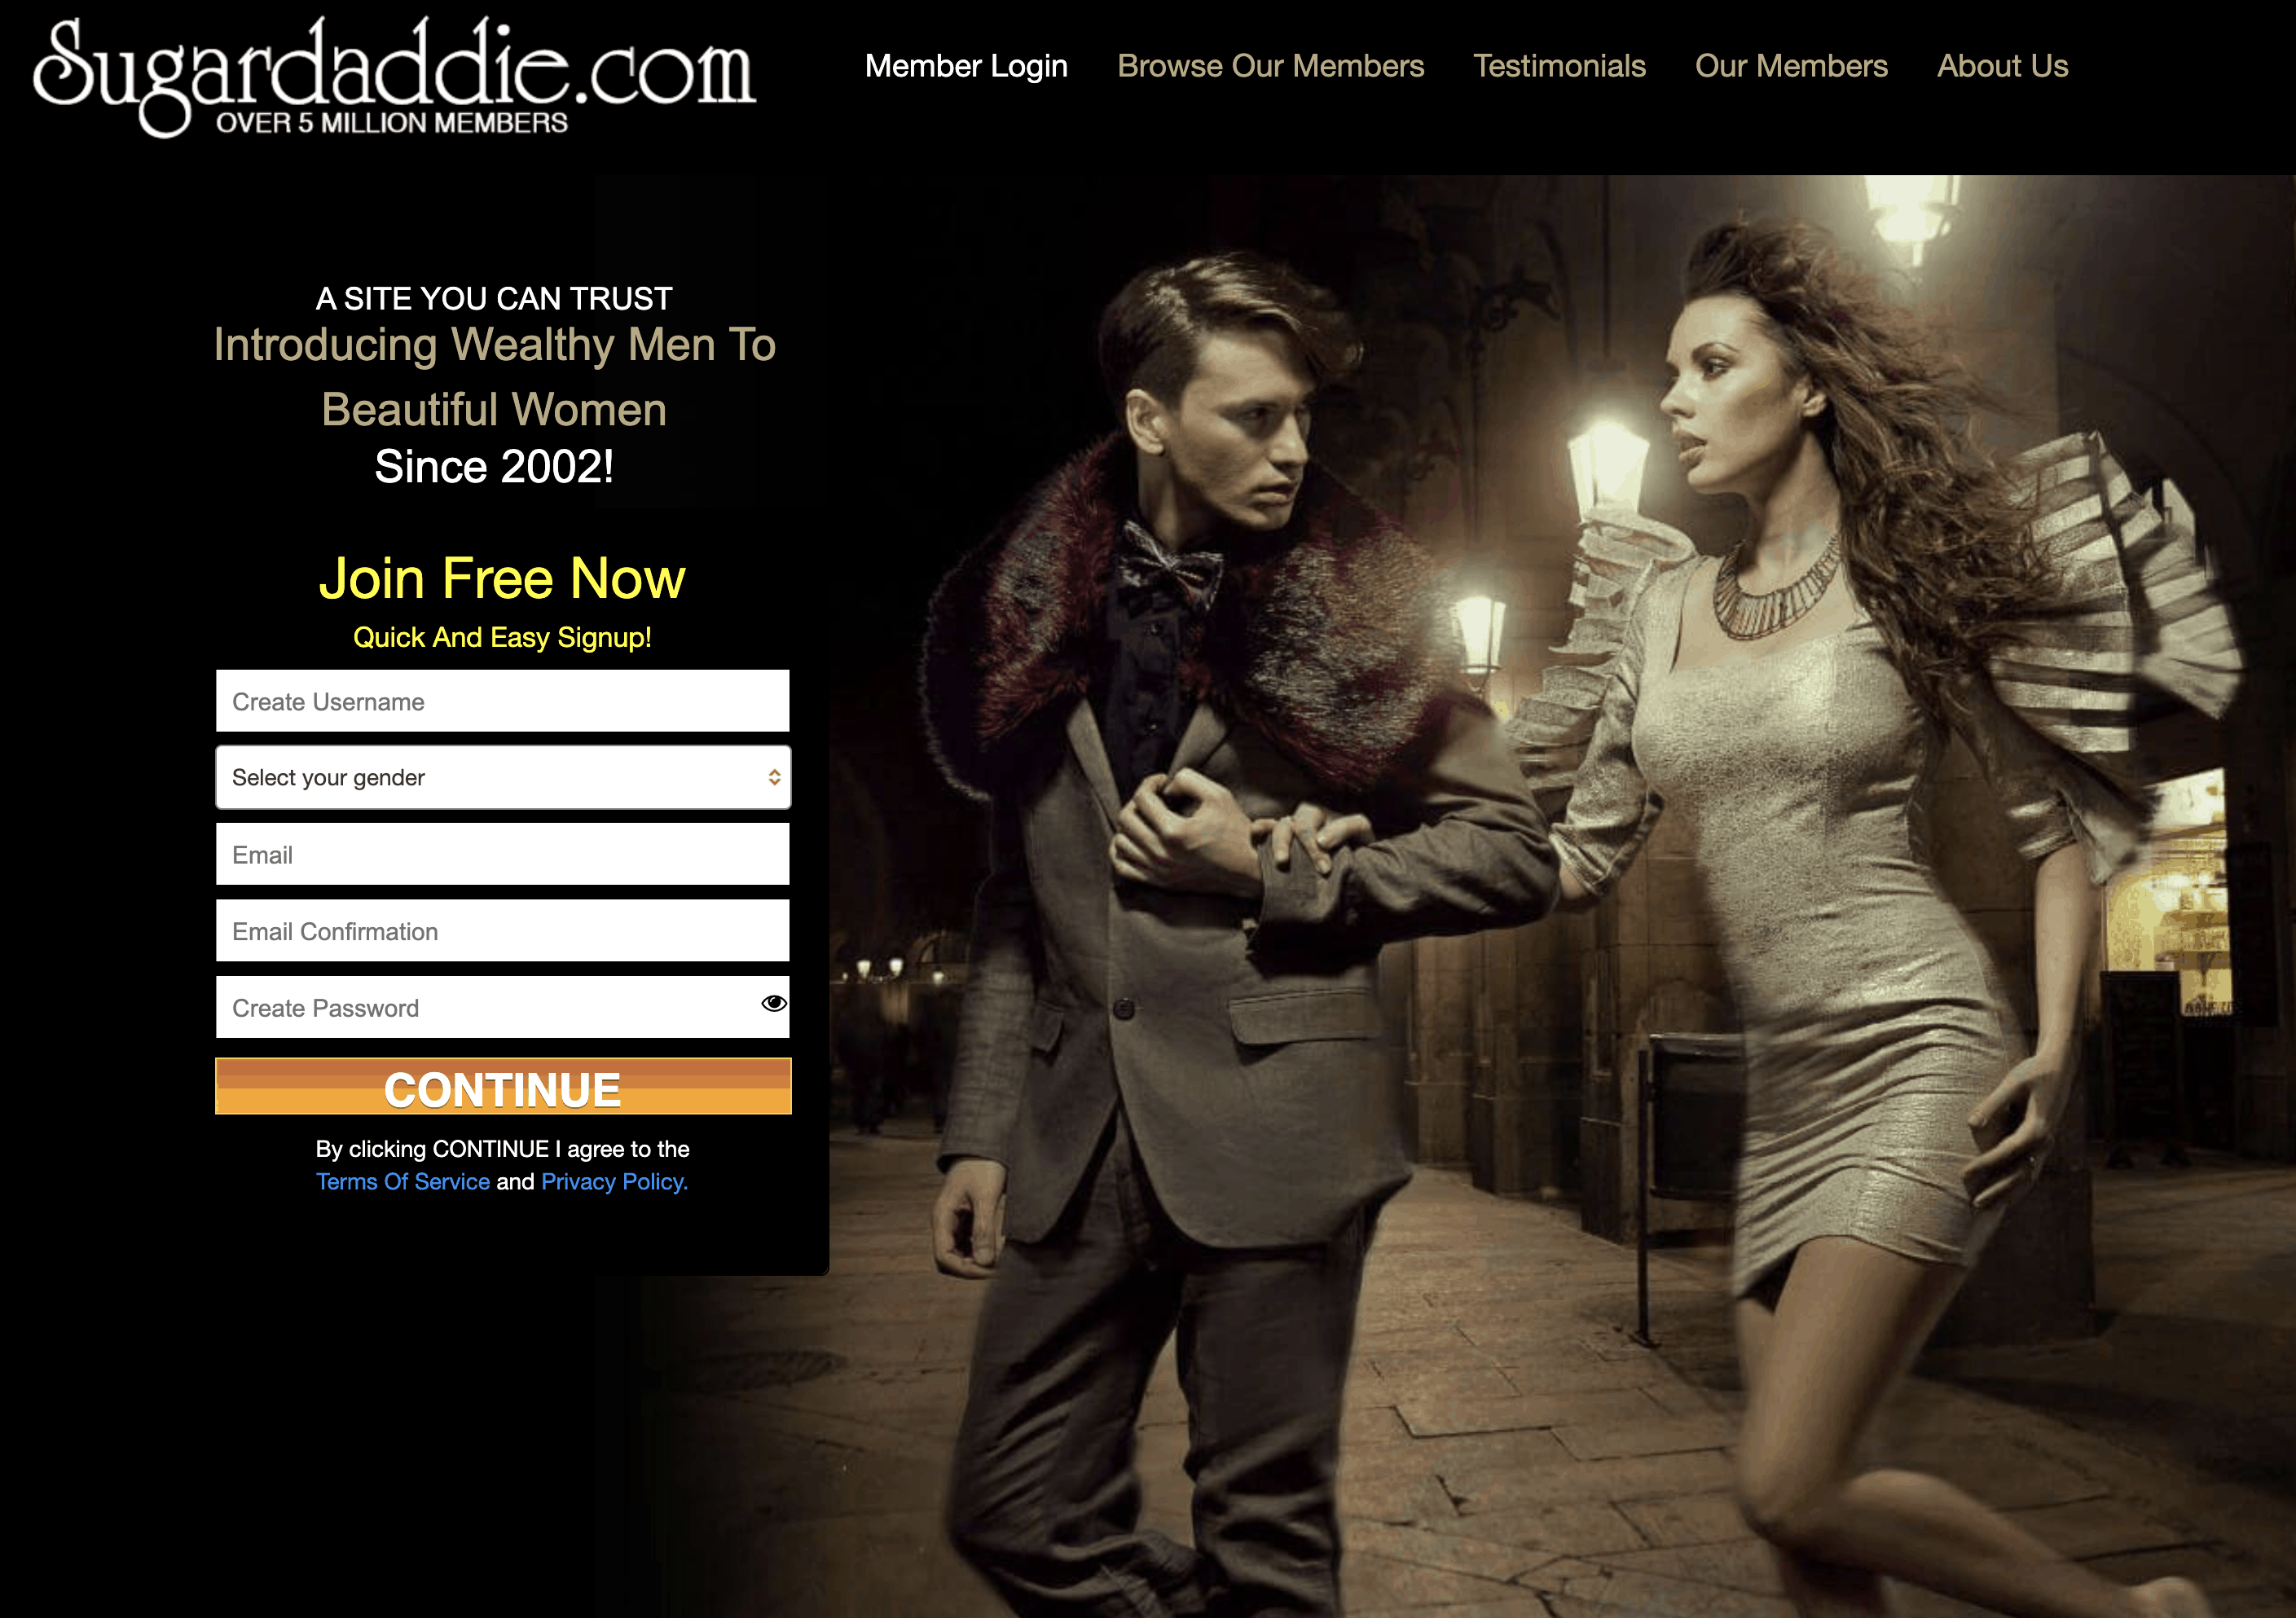 Sign-Up Page of SugarDaddie.com